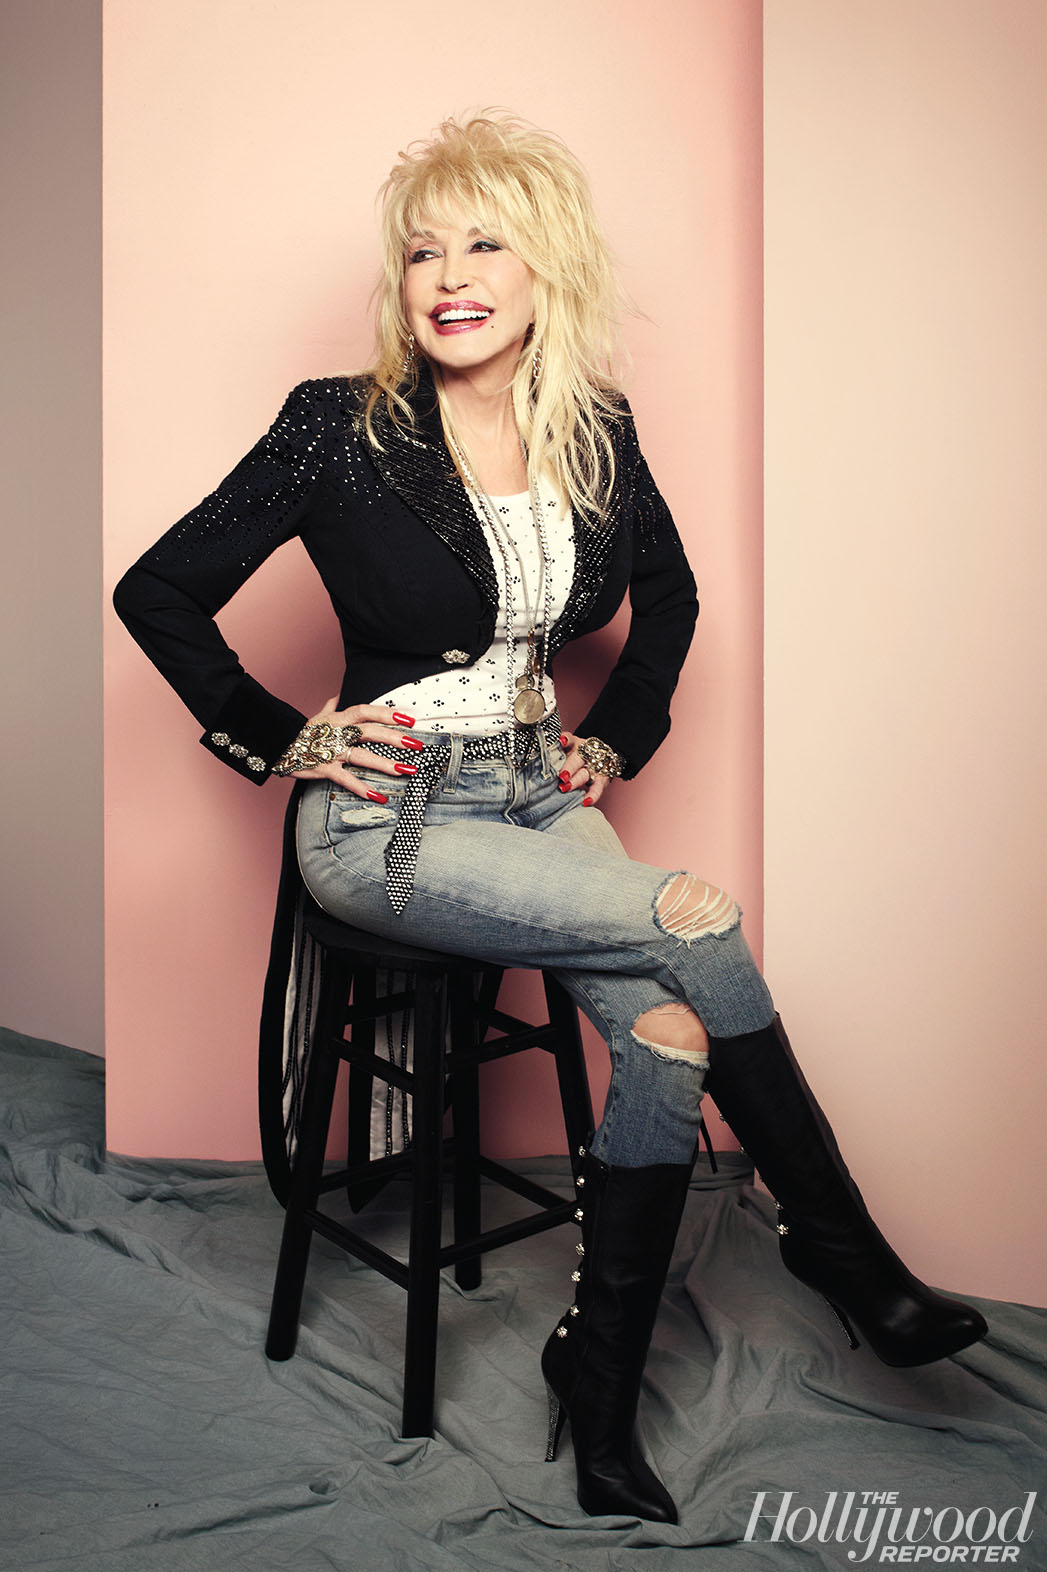 Parton on Her Business Style